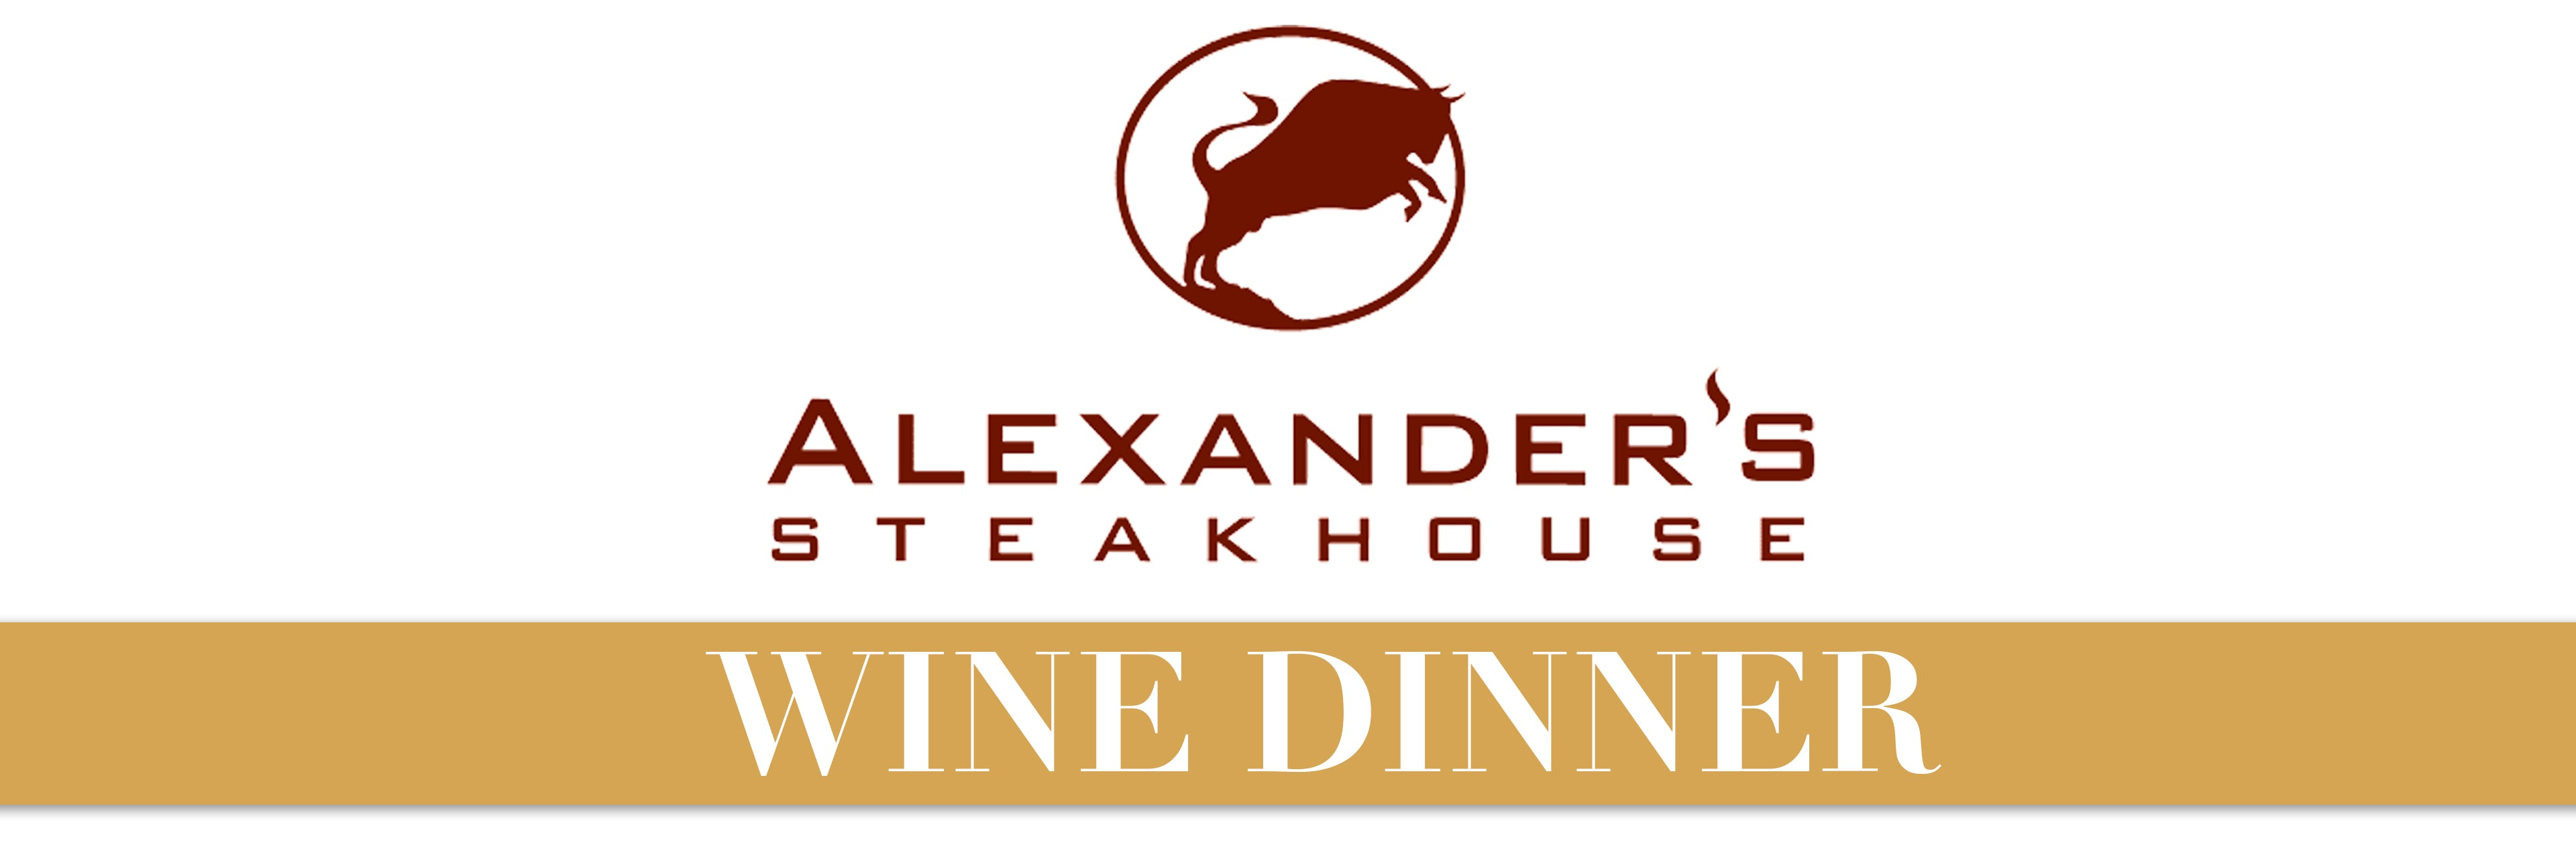 Alexander's Steakhouse Wine Dinner through LearnAboutWine.com